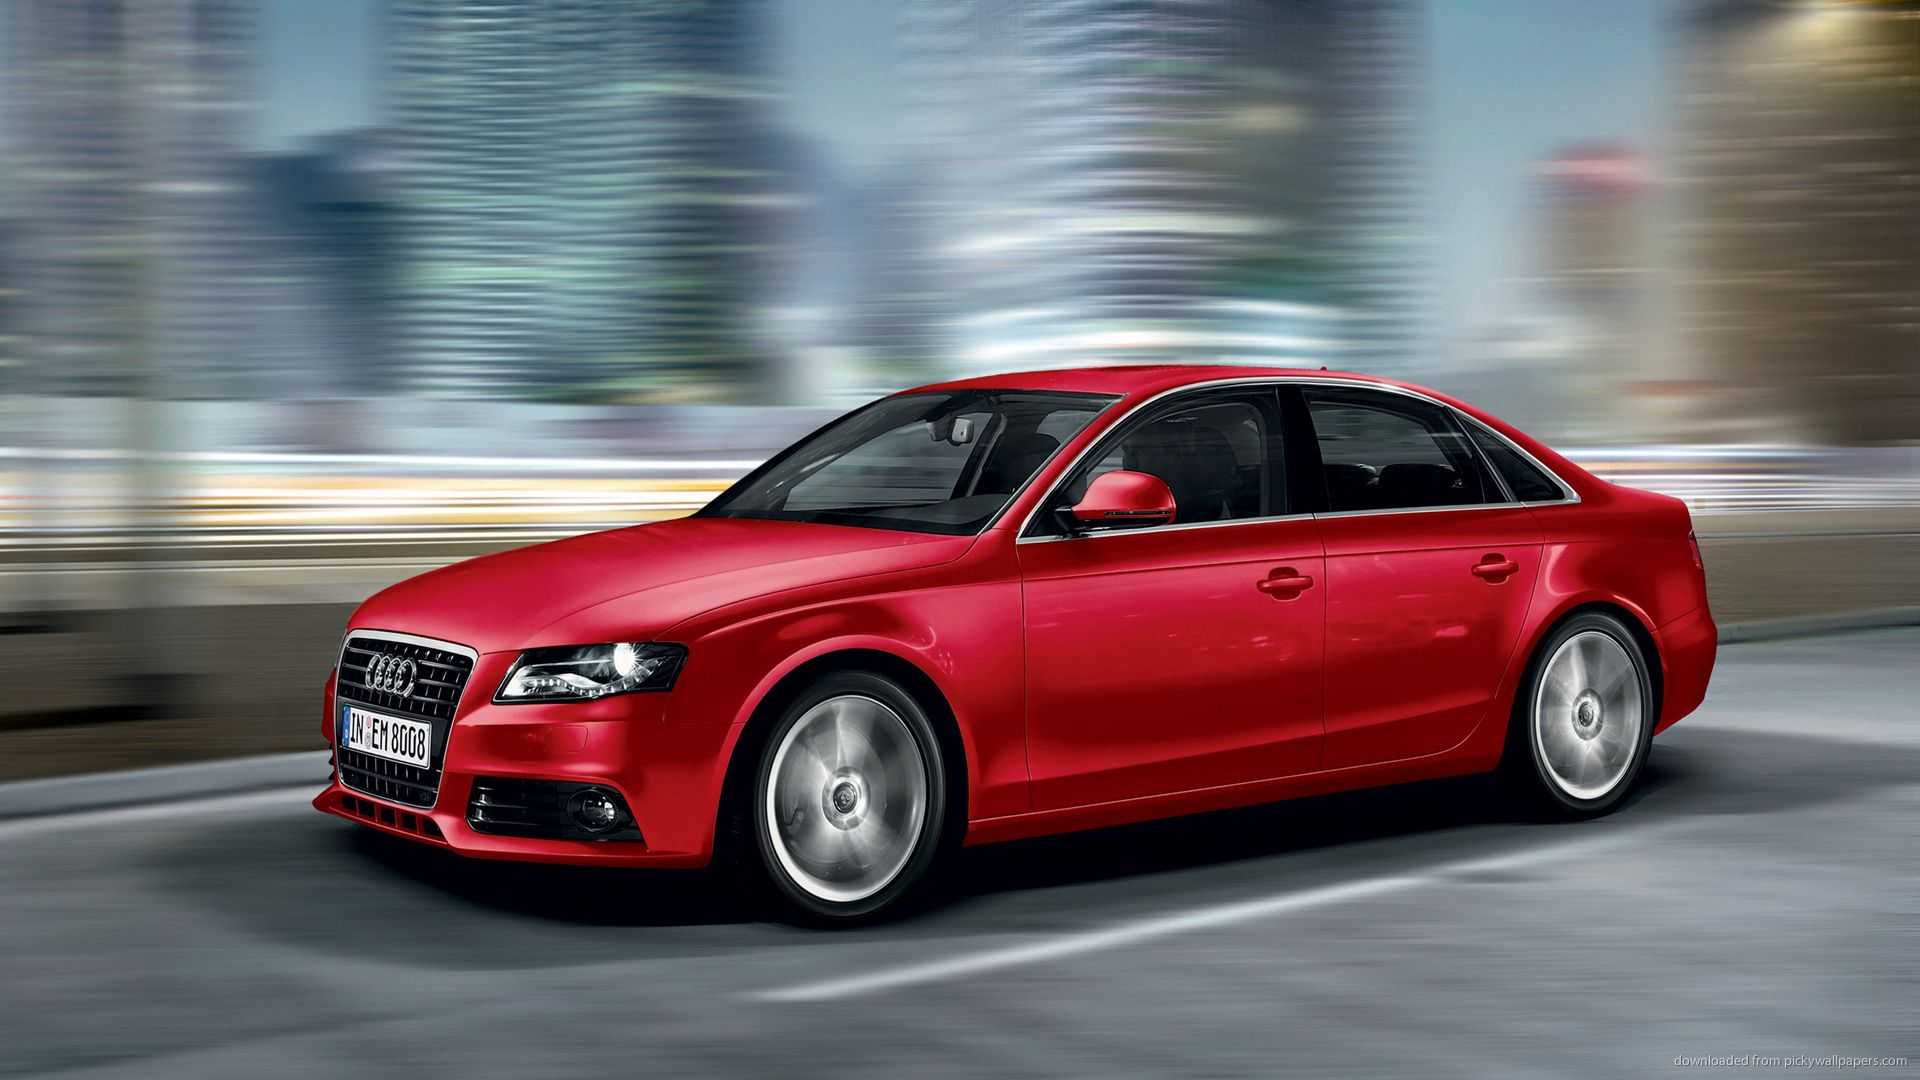 Audi A4 Red 2012 Babe On The Road Wow